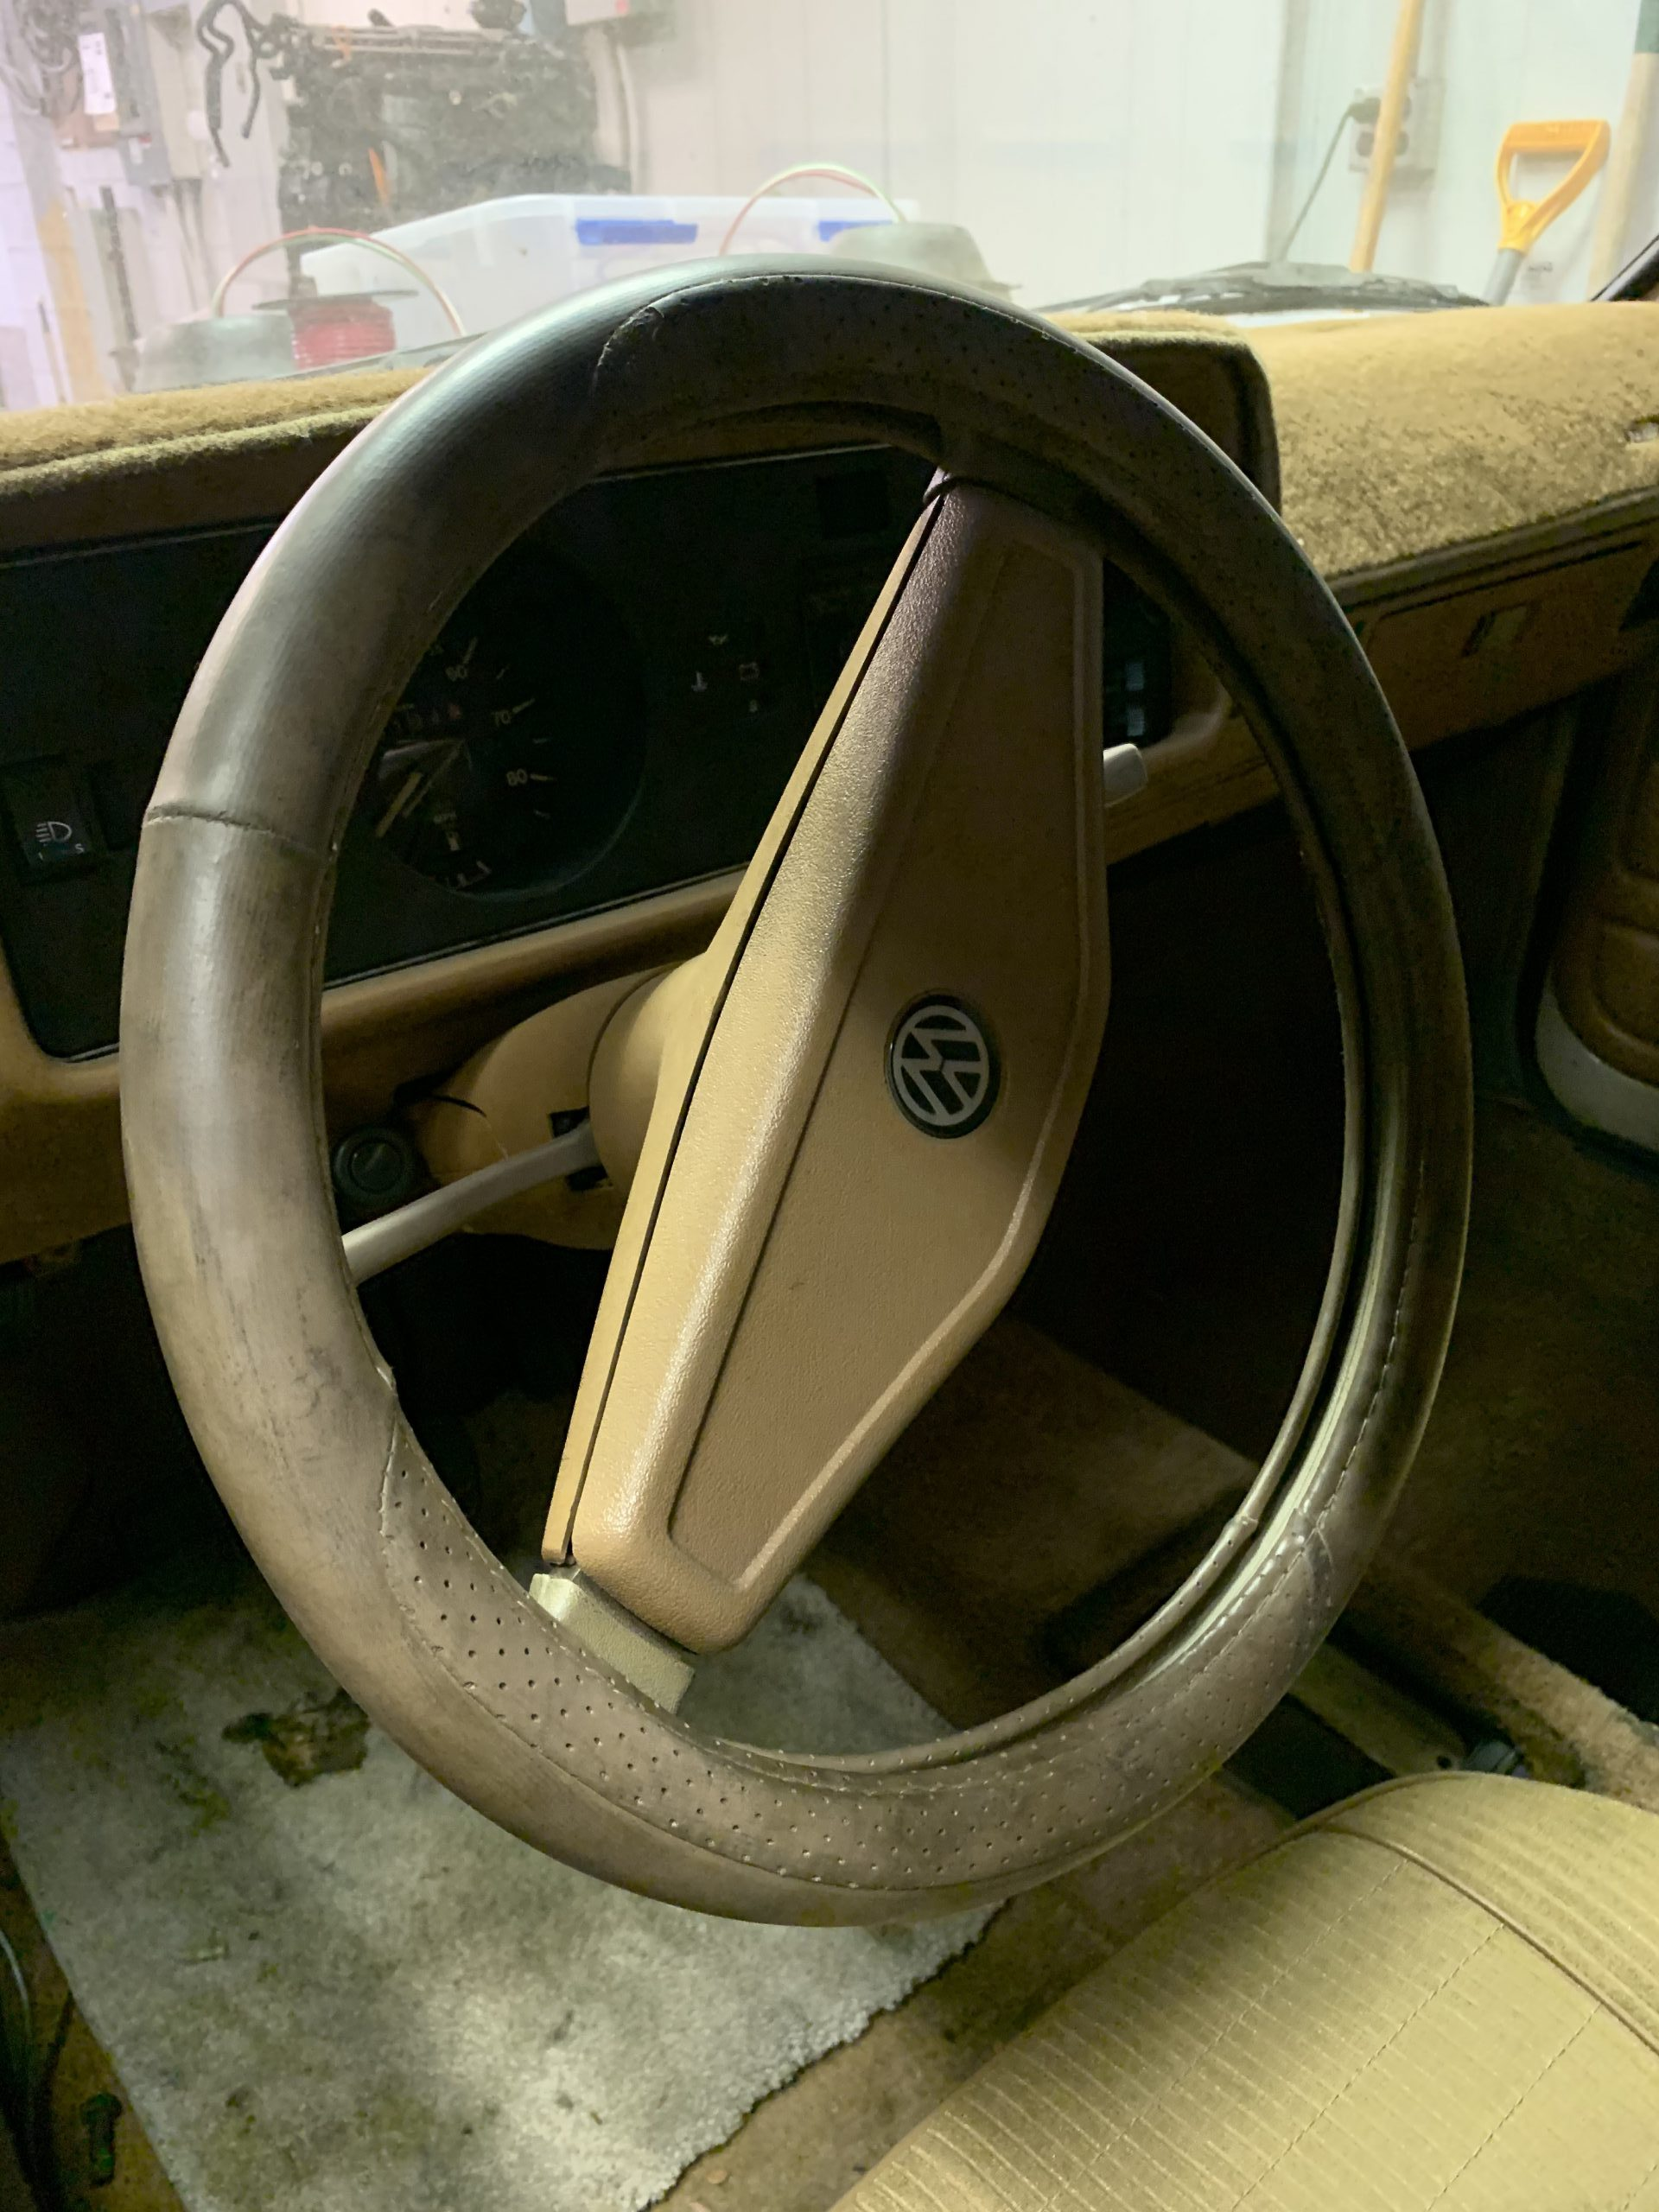 1980 VW Rabbit TDI swap steering wheel before Aug 15, 3 42 19 PM